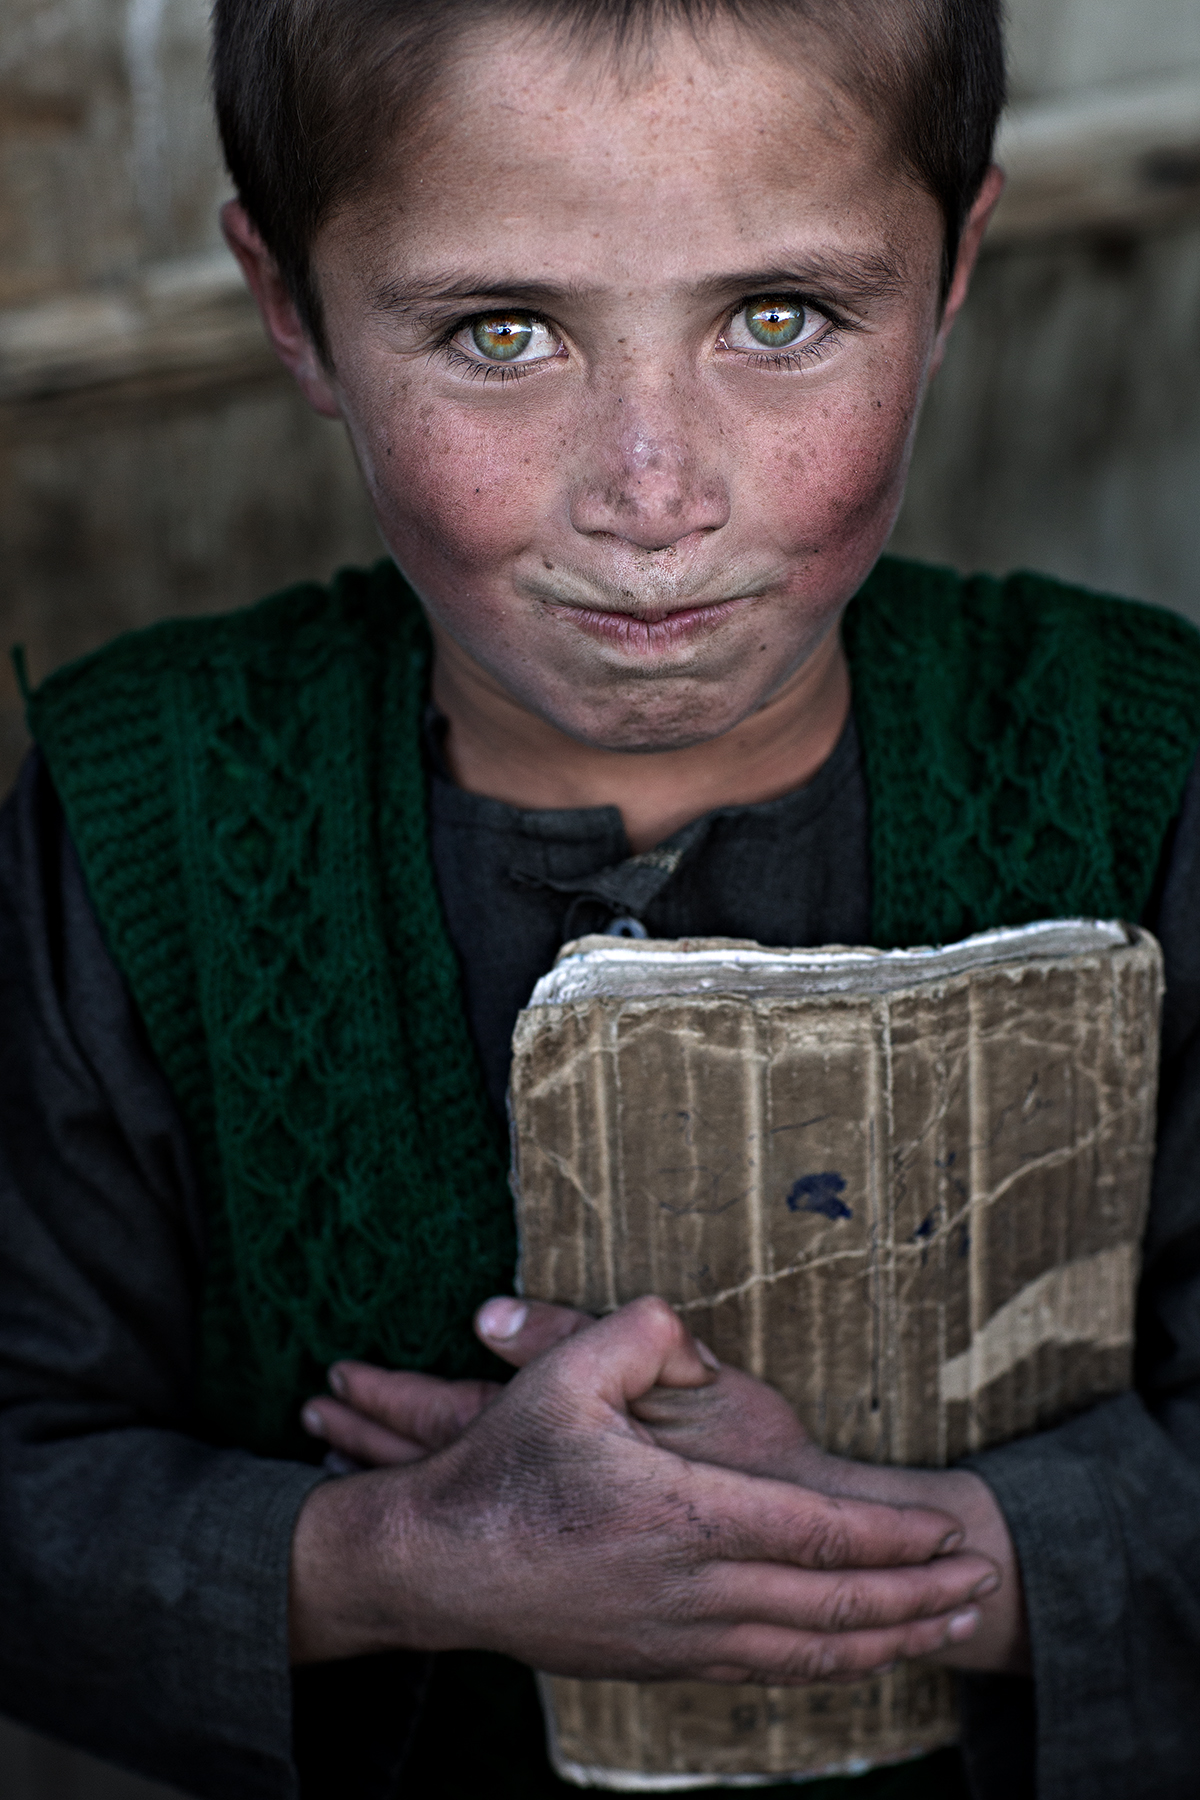 green eyes, Afghanistan...